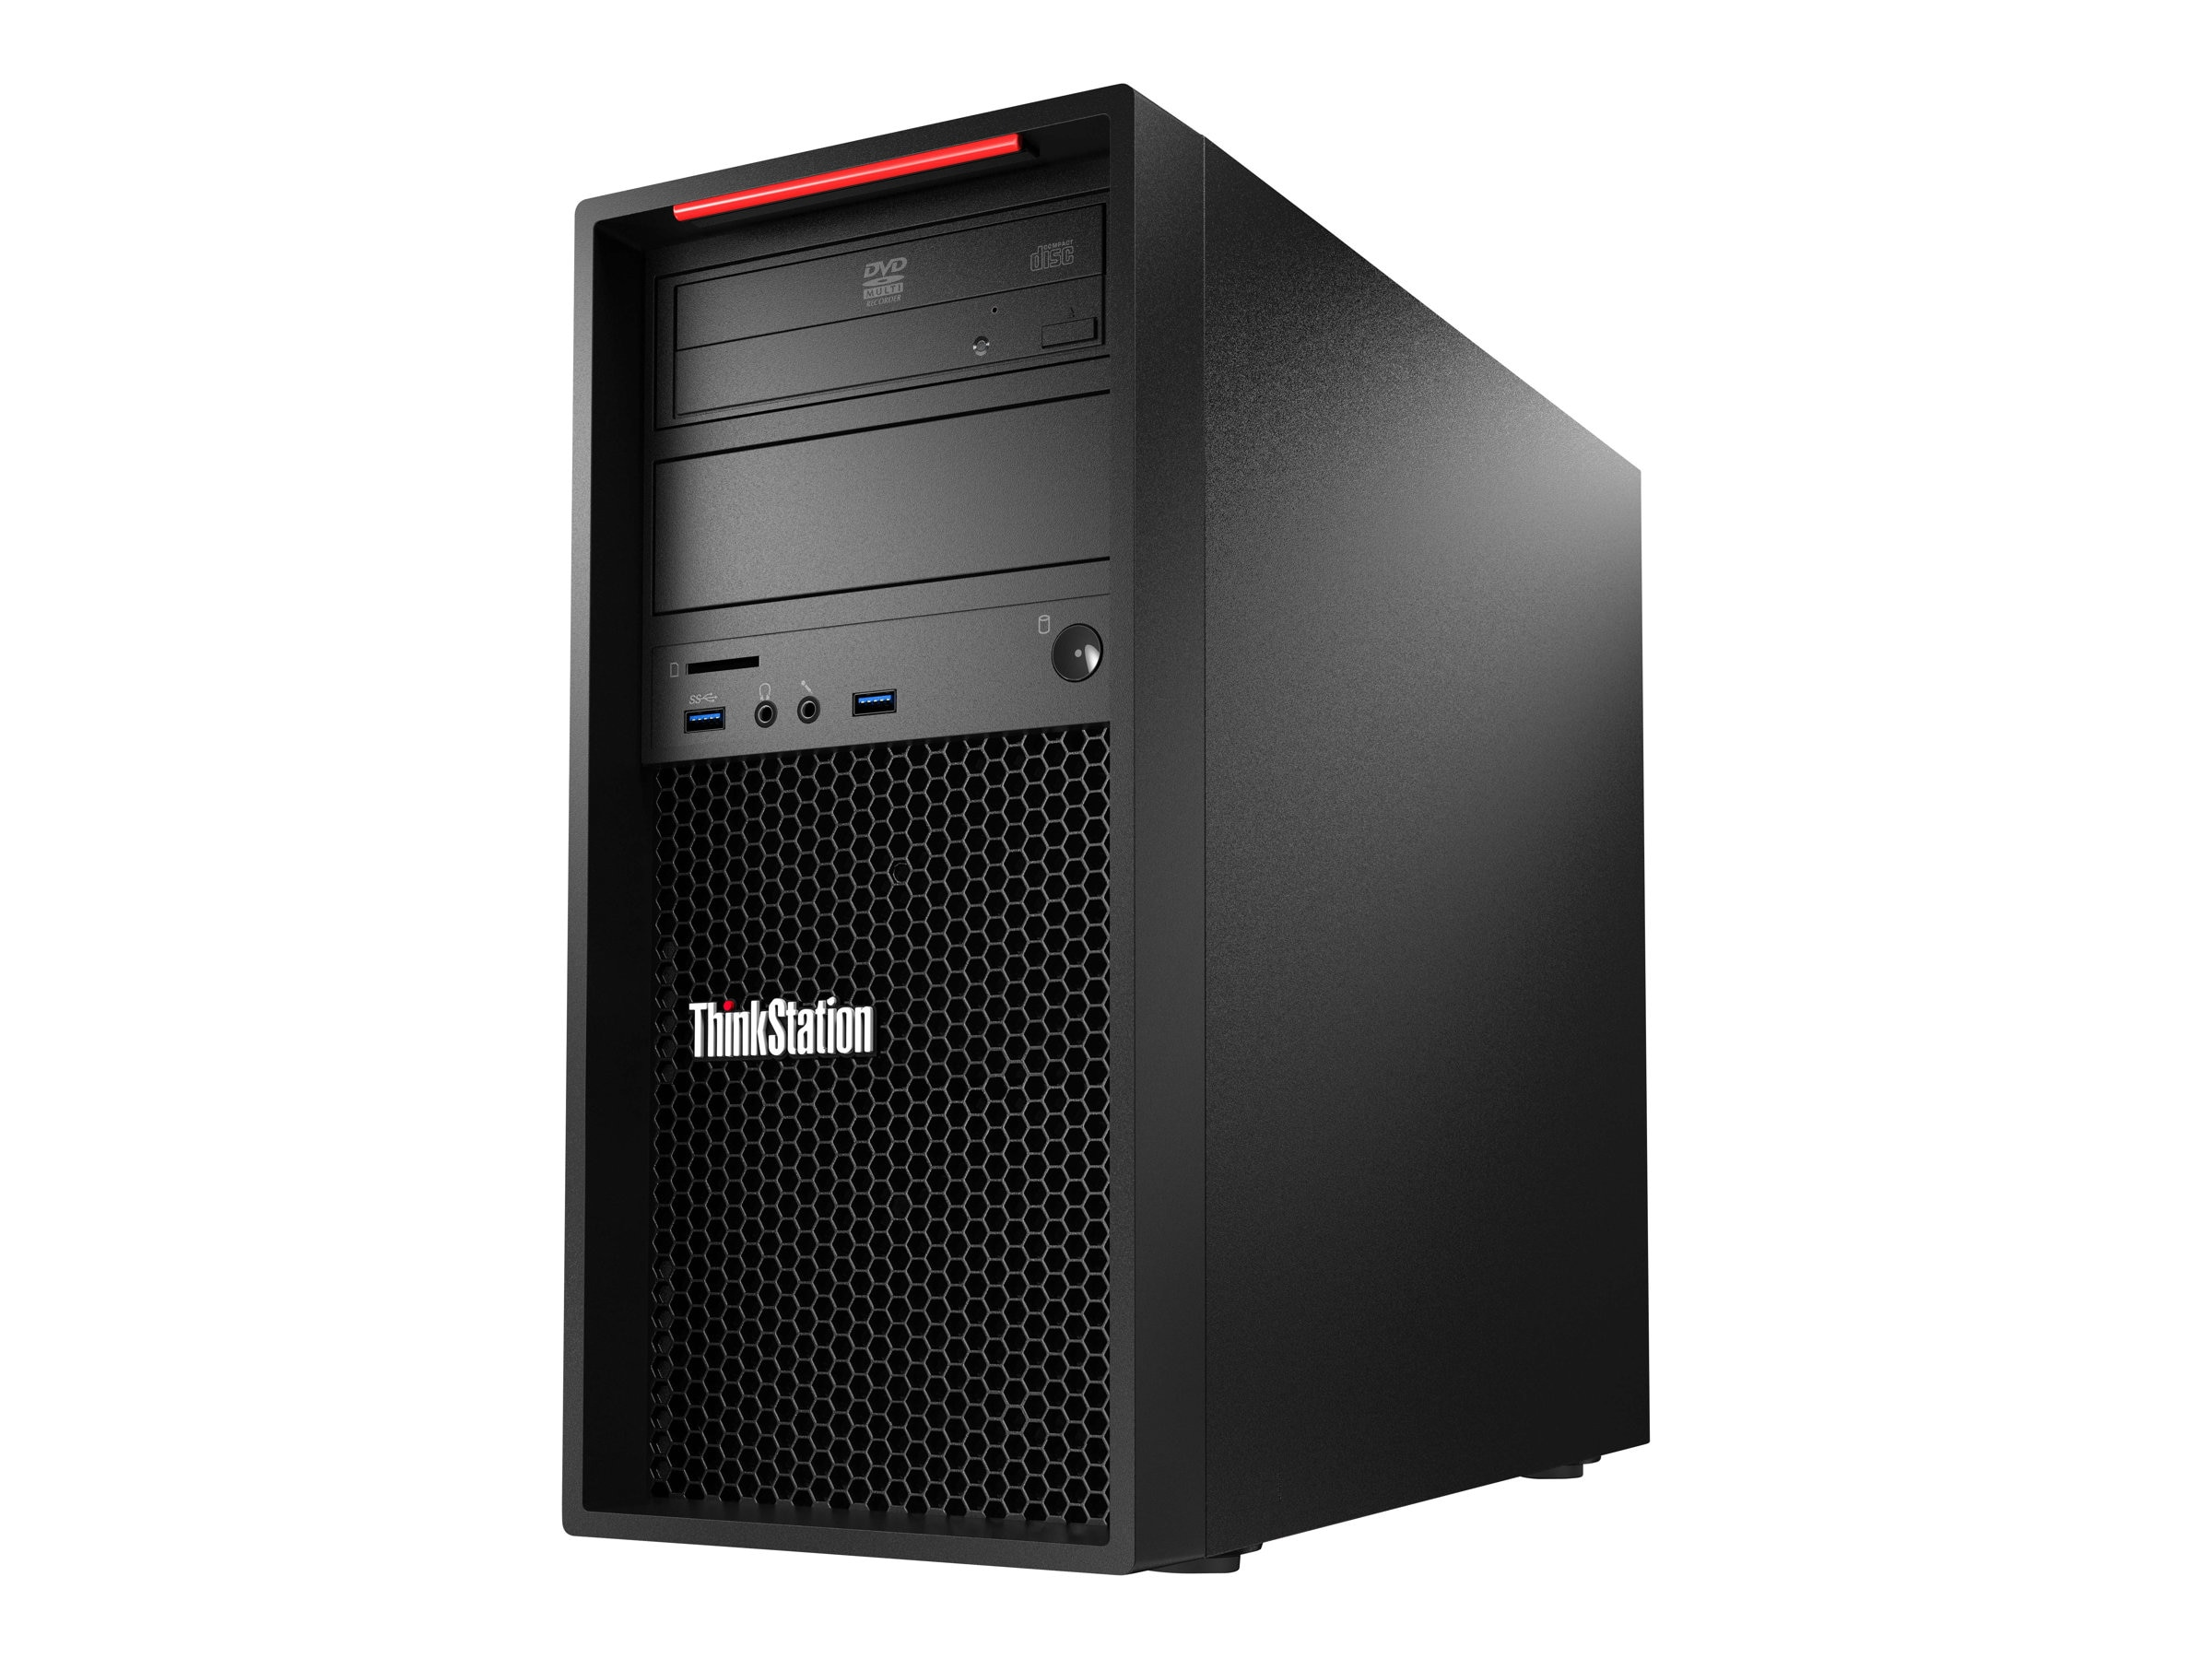 Lenovo ThinkStation P310 Xeon E3-1220 v5 W10DG, 30ASS0NC01